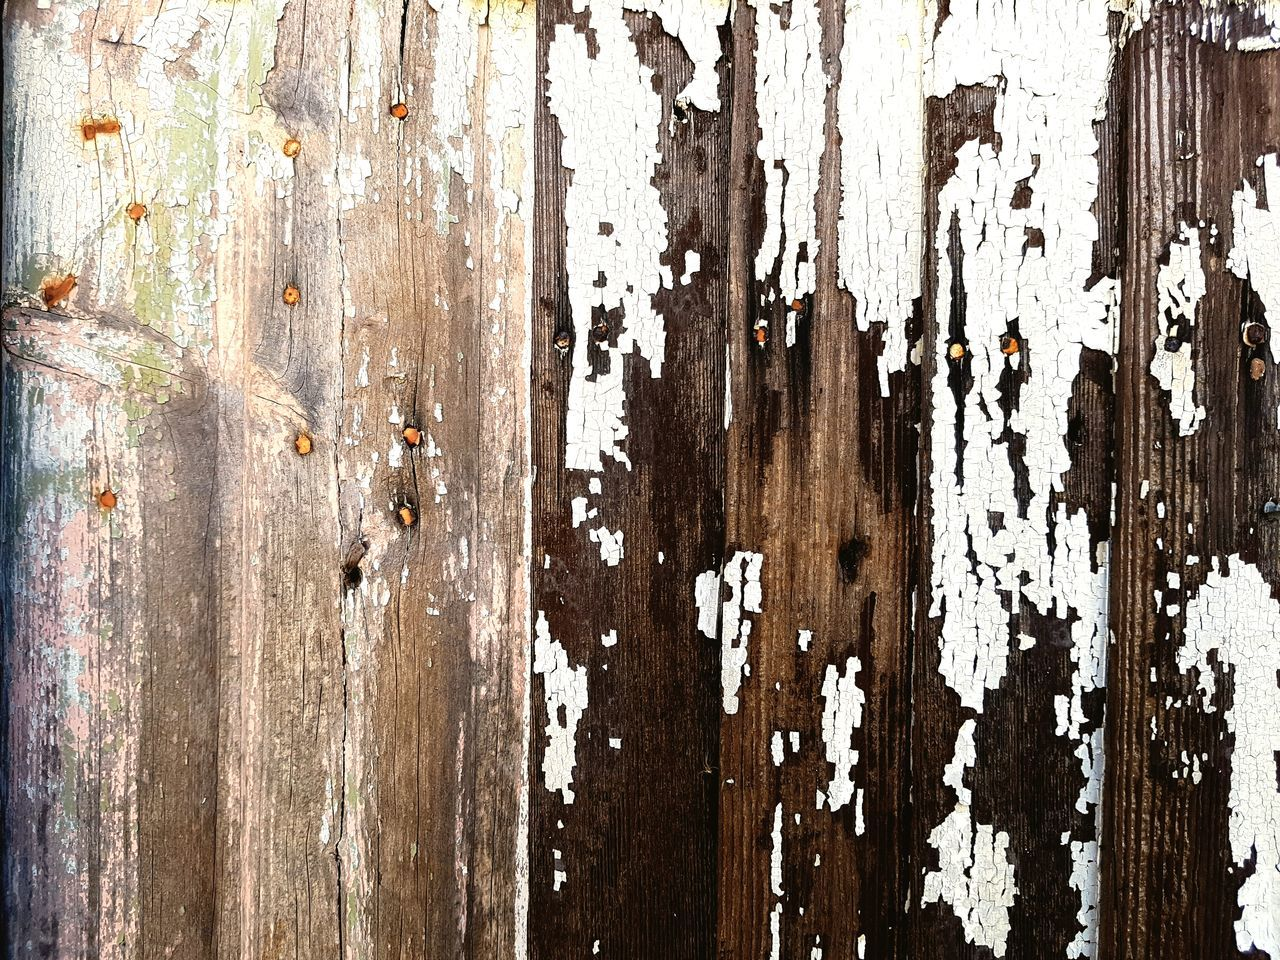 textured, wood - material, backgrounds, close-up, no people, full frame, outdoors, day